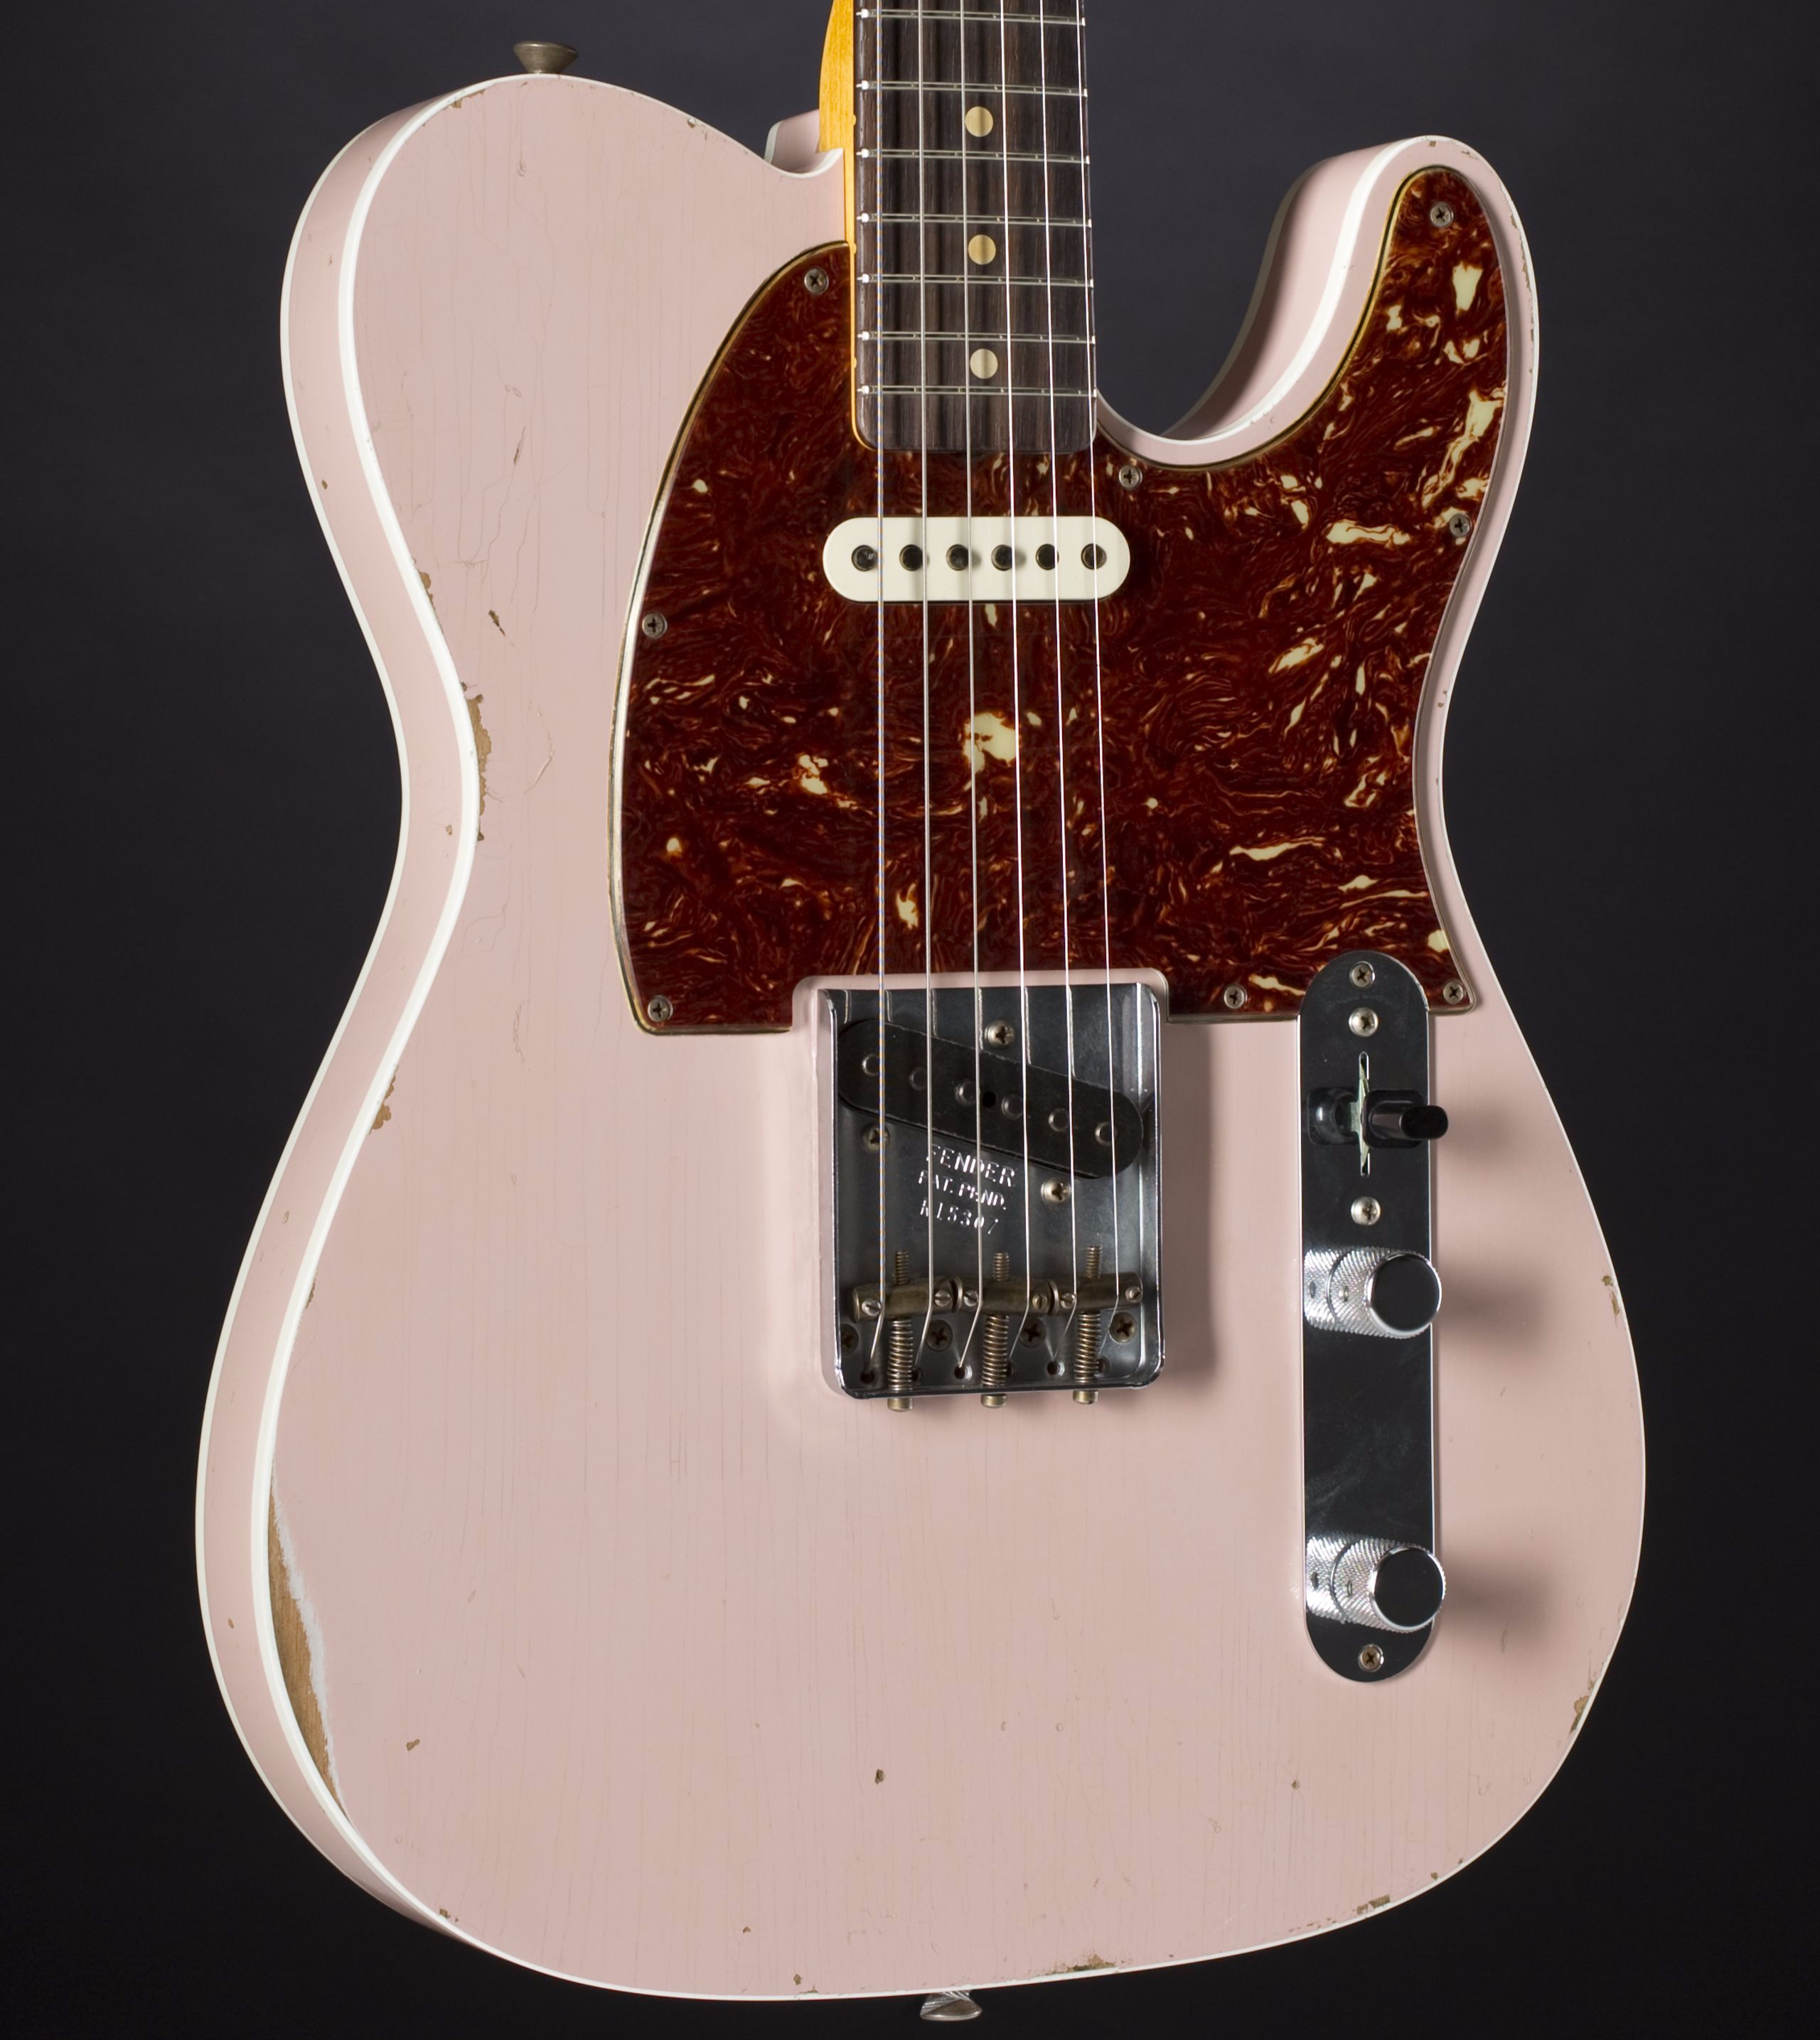 FENDER 1960 Telecaster Custom Relic Shell Pink #R15307 Body Detail